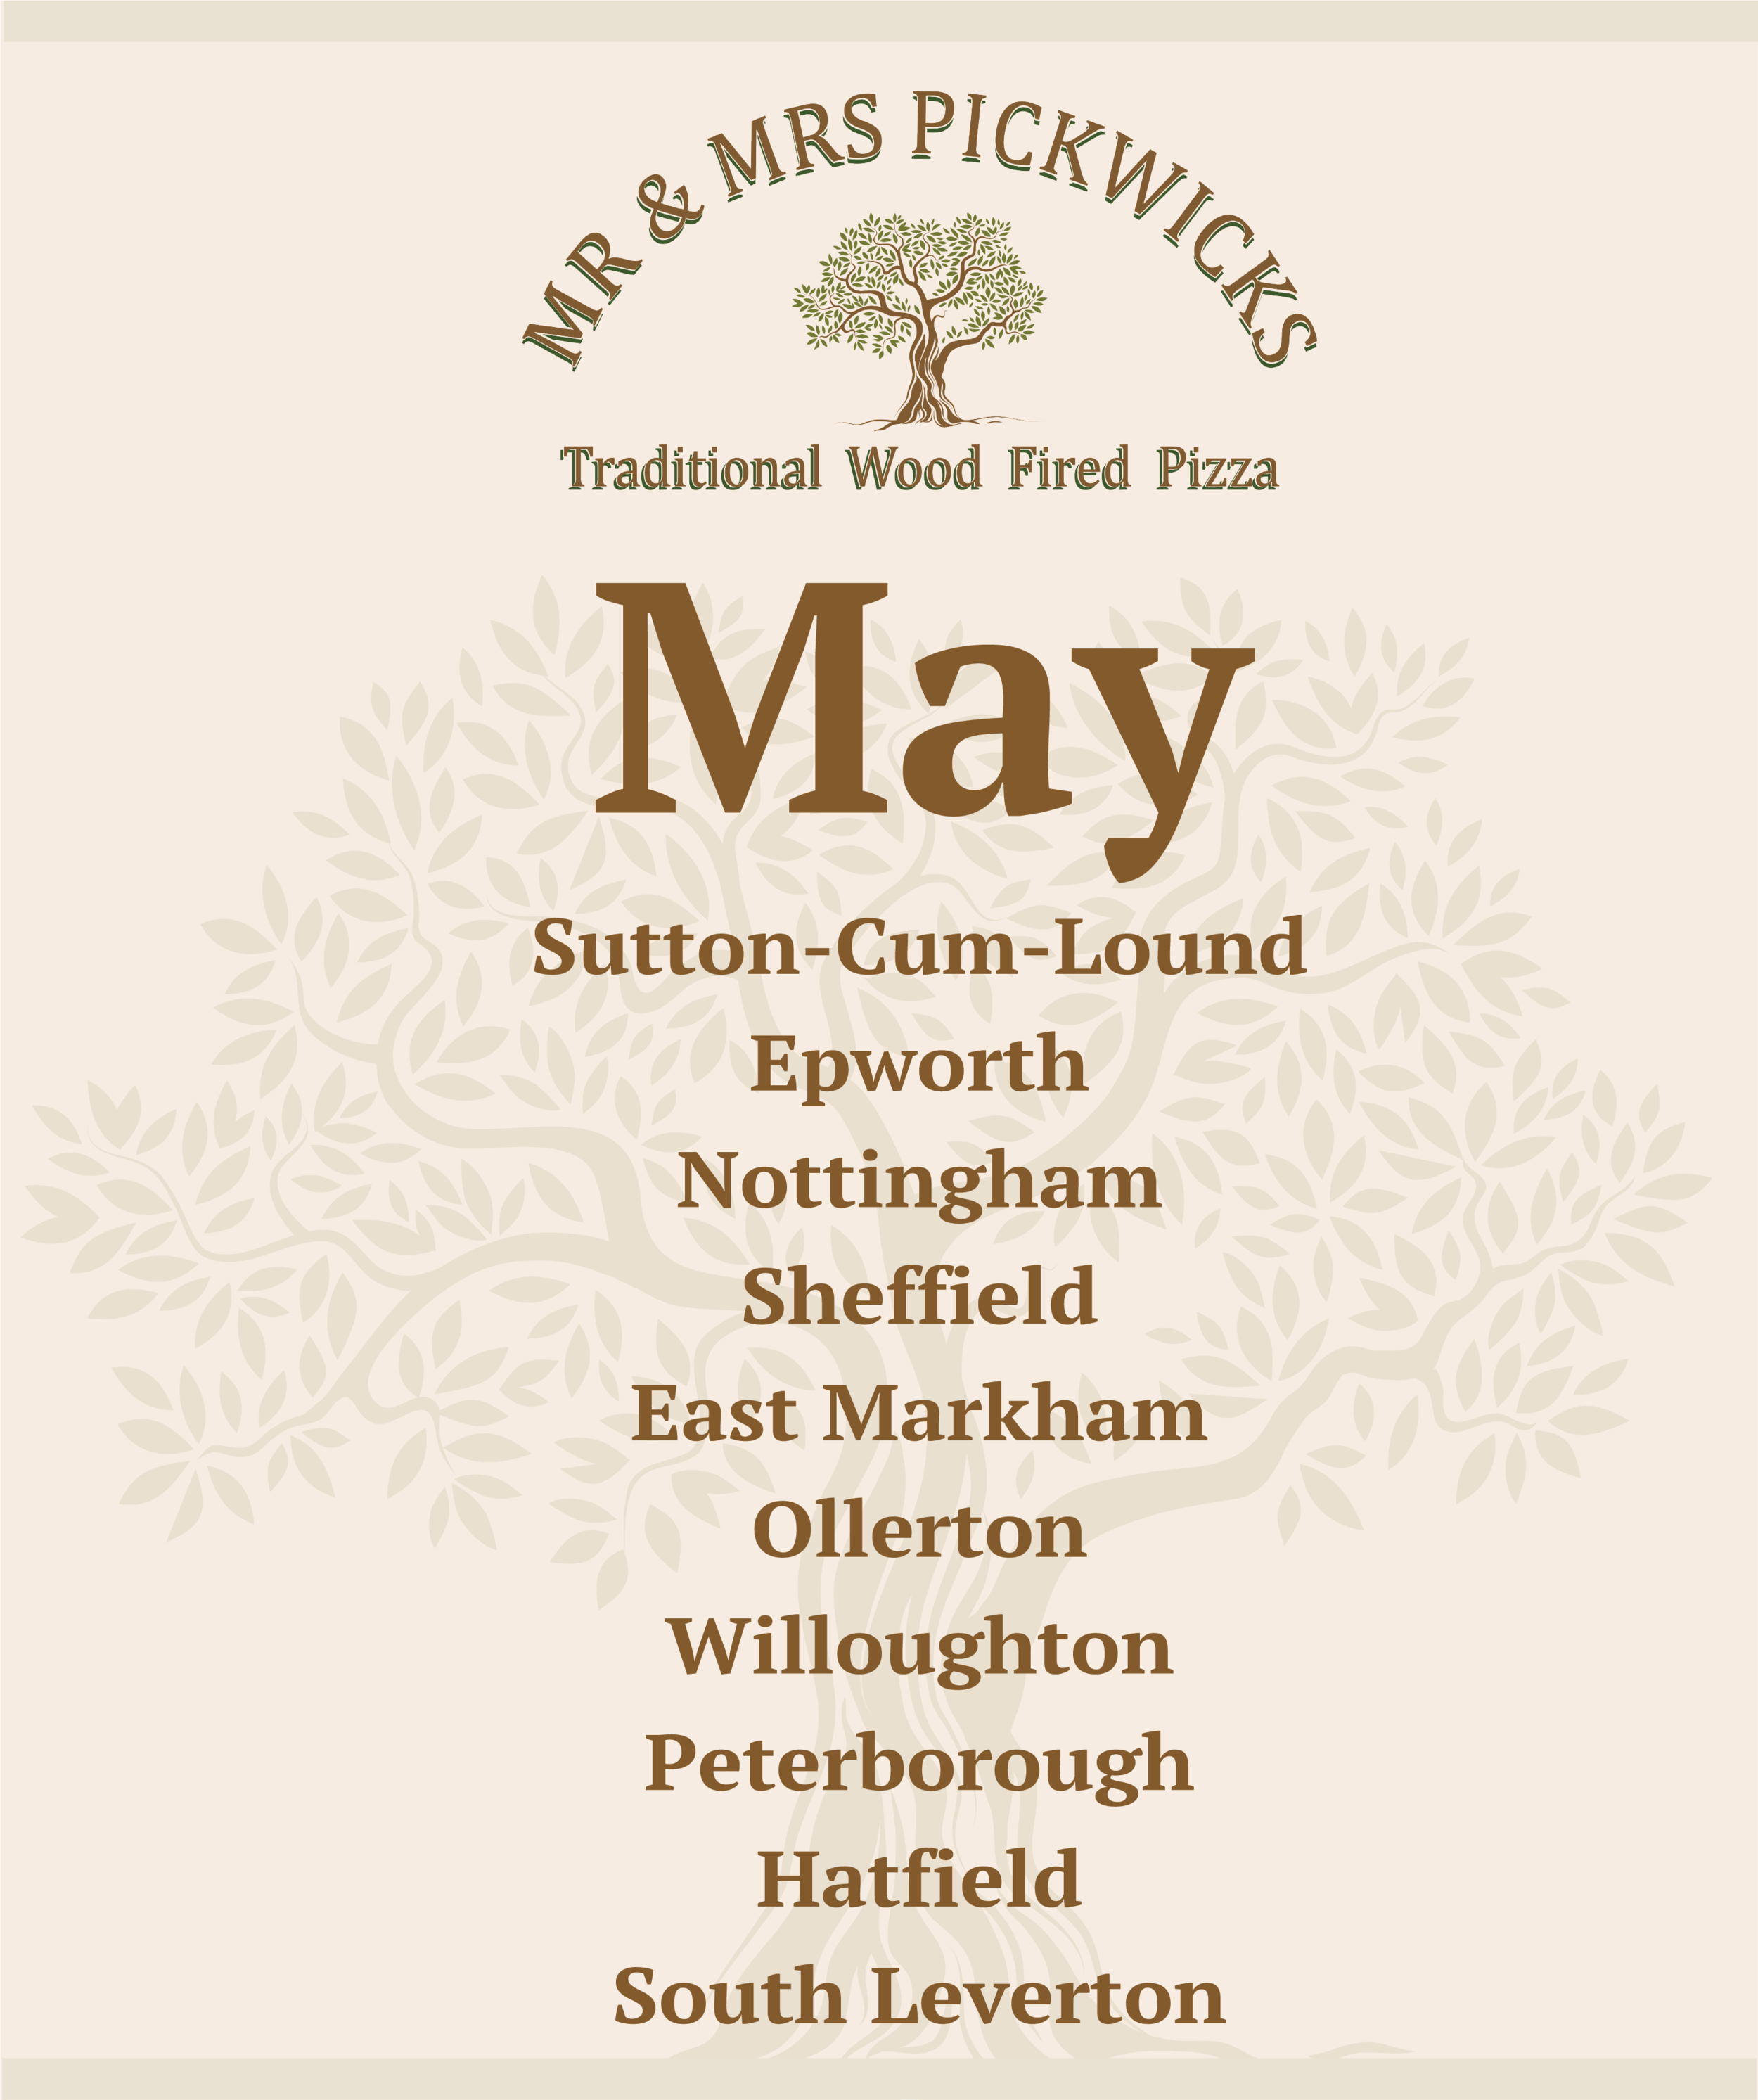 May - We've had a cracking start to the month of May:A sell out at The Carpenters Arms, WestwoodsideA sell out Fake Fest in DoncasterA private Christening Doo in Sturton By StowHere's where you'll find us popping up over the rest of the month, keep your eye out for our public events and, with a bit of luck, Henrietta May be making an appearance 🍕🍻🌞Keep an eye on our Facebook page for event details www.facebook.com/thepickwicks1